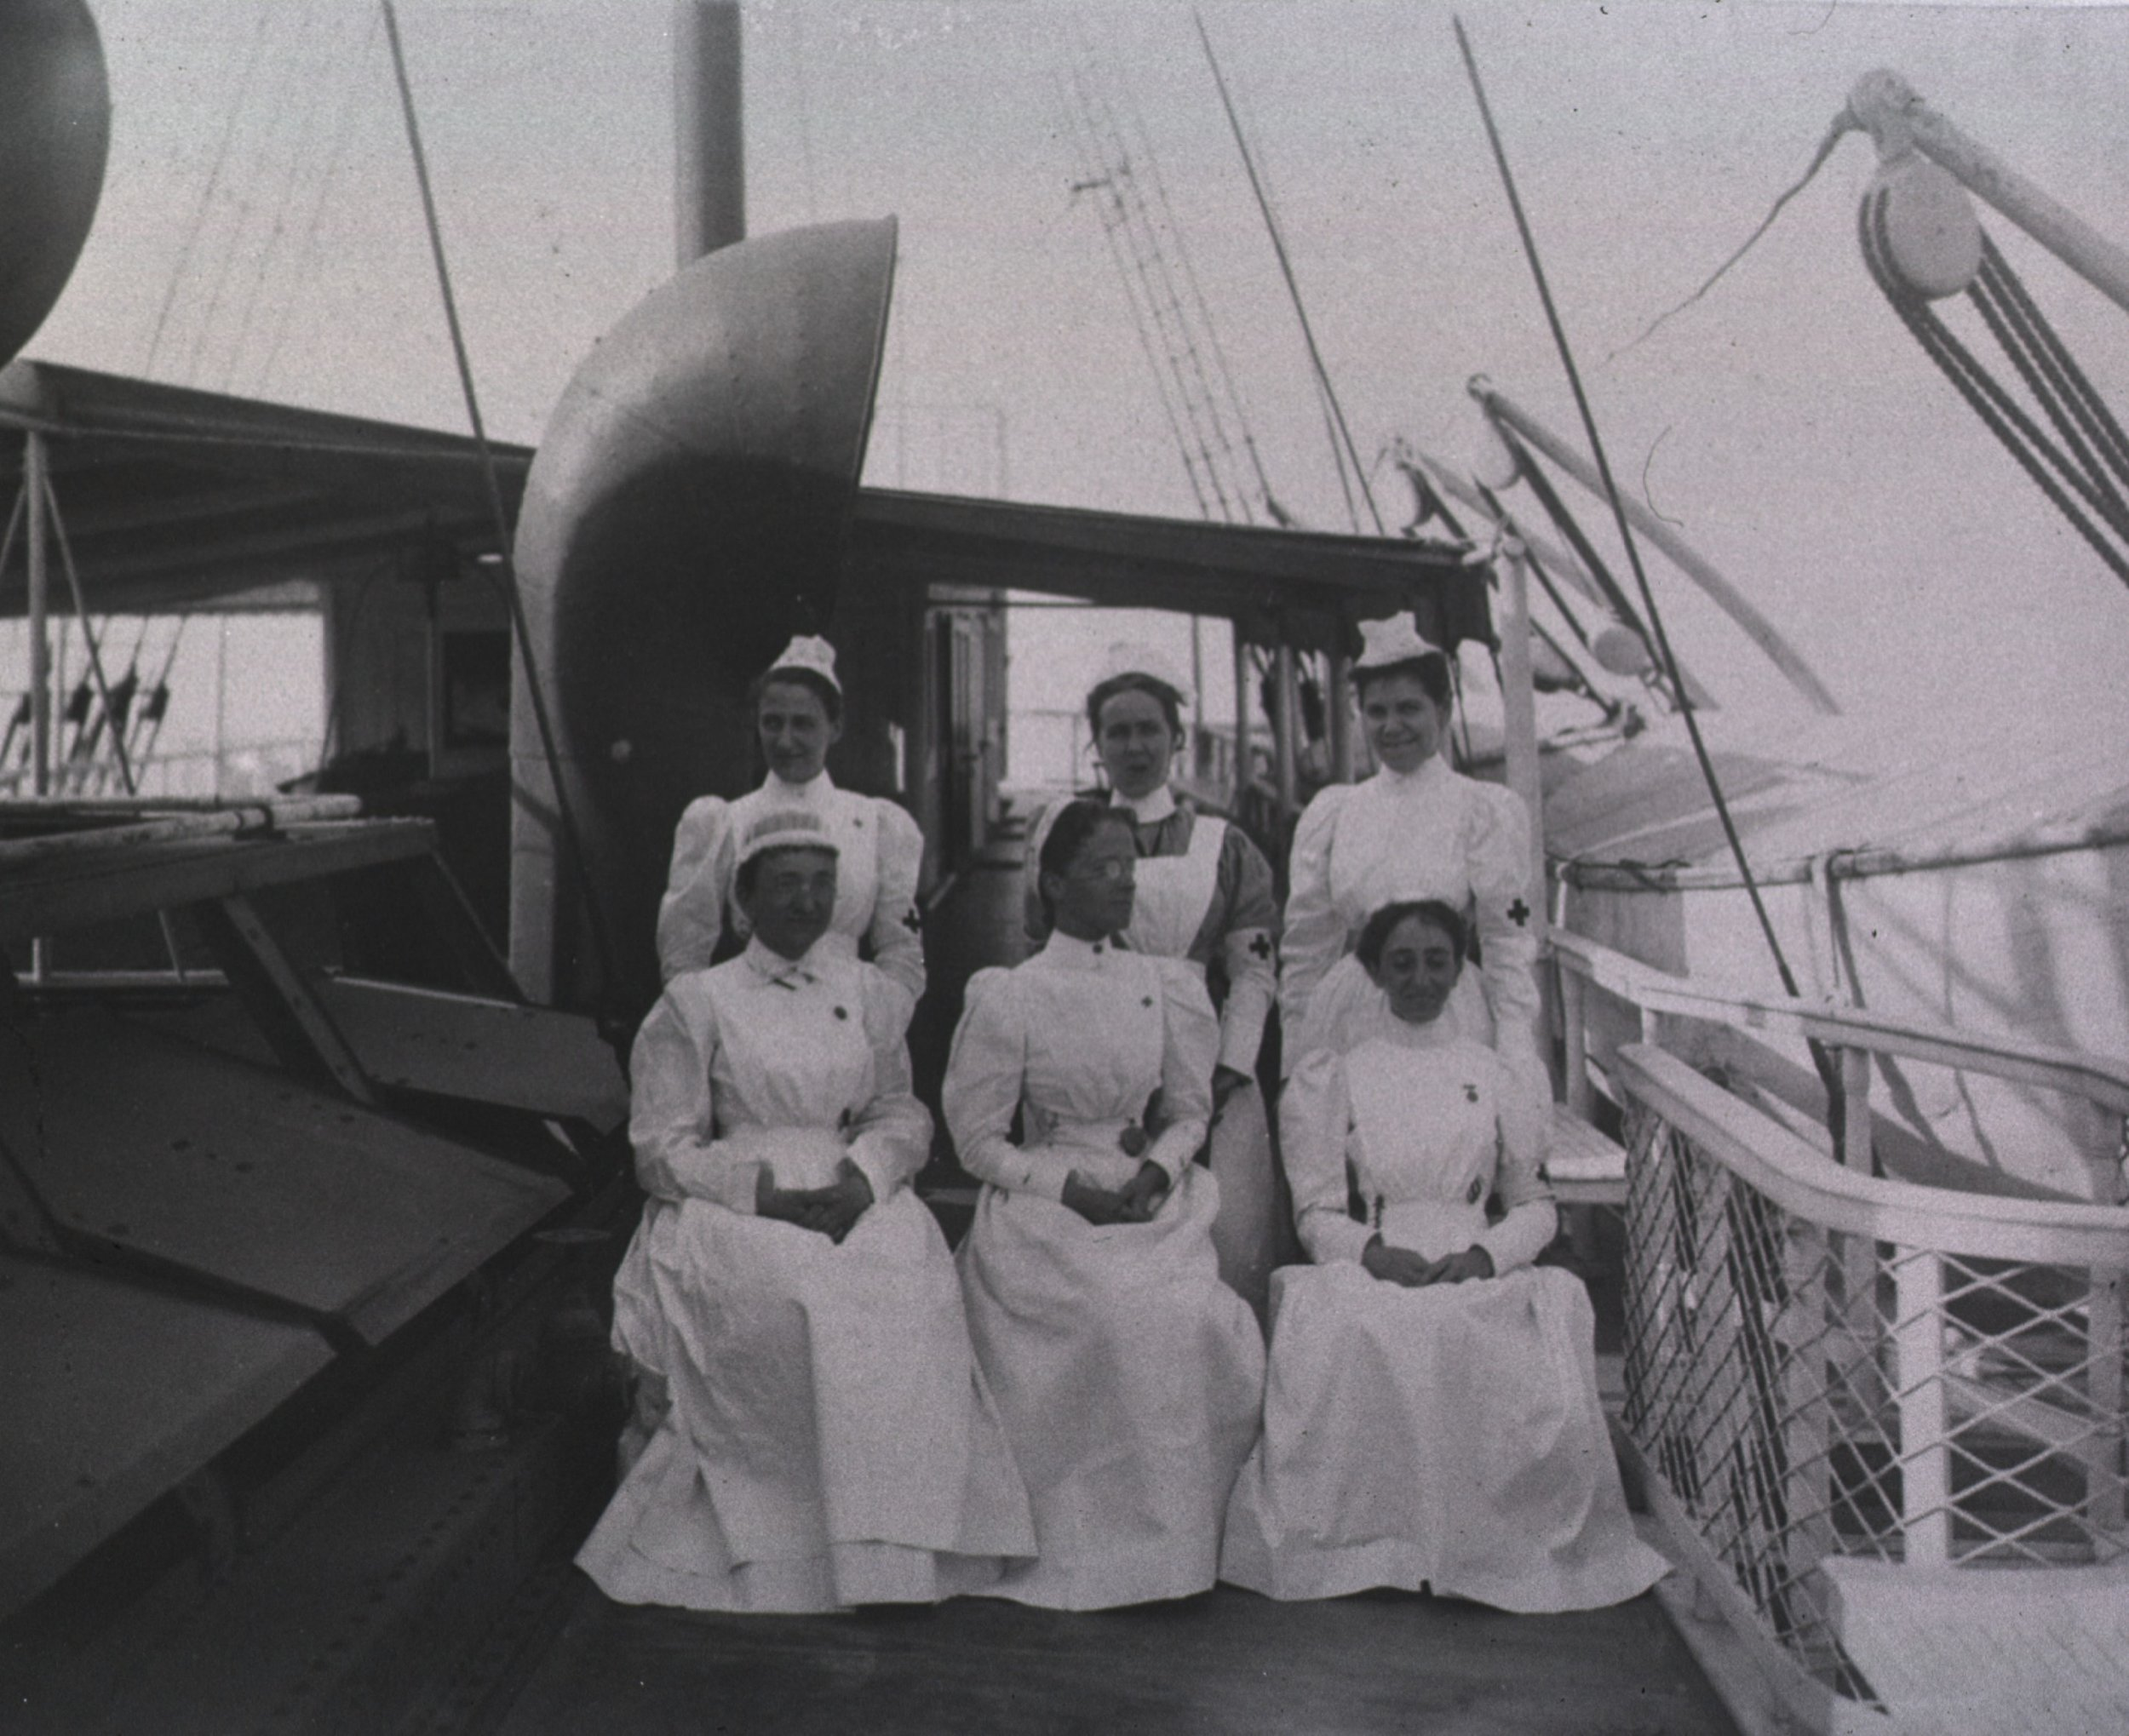 By 1898, lady nurses had that signature white uniform going, and they were becoming a more accepted fixture on the wartime nursing scene.   U.S. Hospital Ship Relief during the Spanish American War. Courtesy of the National Museum of Health and Medicine